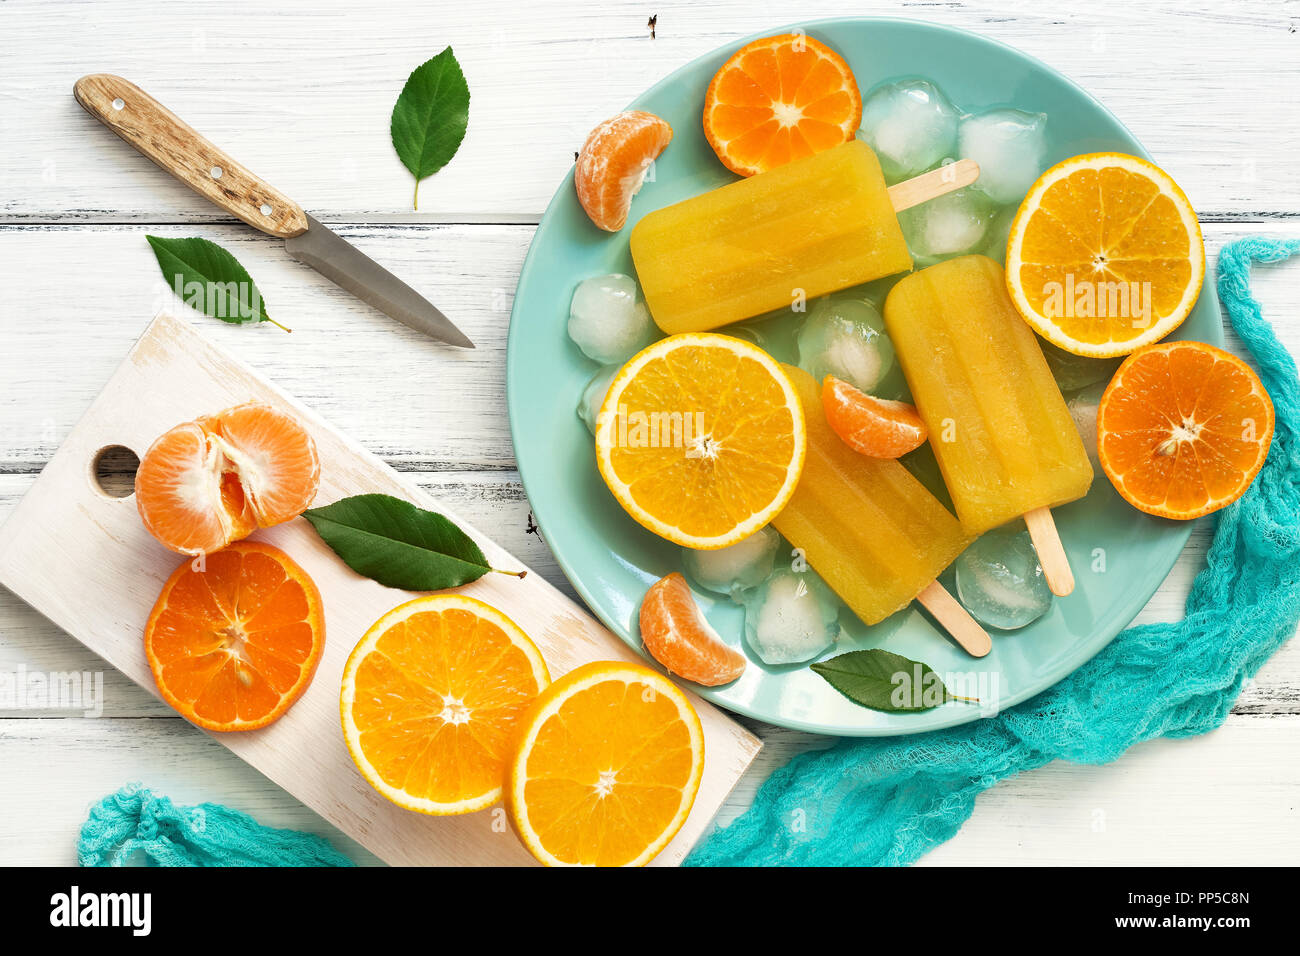 Orange Tangerine popsicles in blue plate with ice cubes and slices of fruit, white wooden rustic background. Top view, copy space,flat lay. - Stock Image